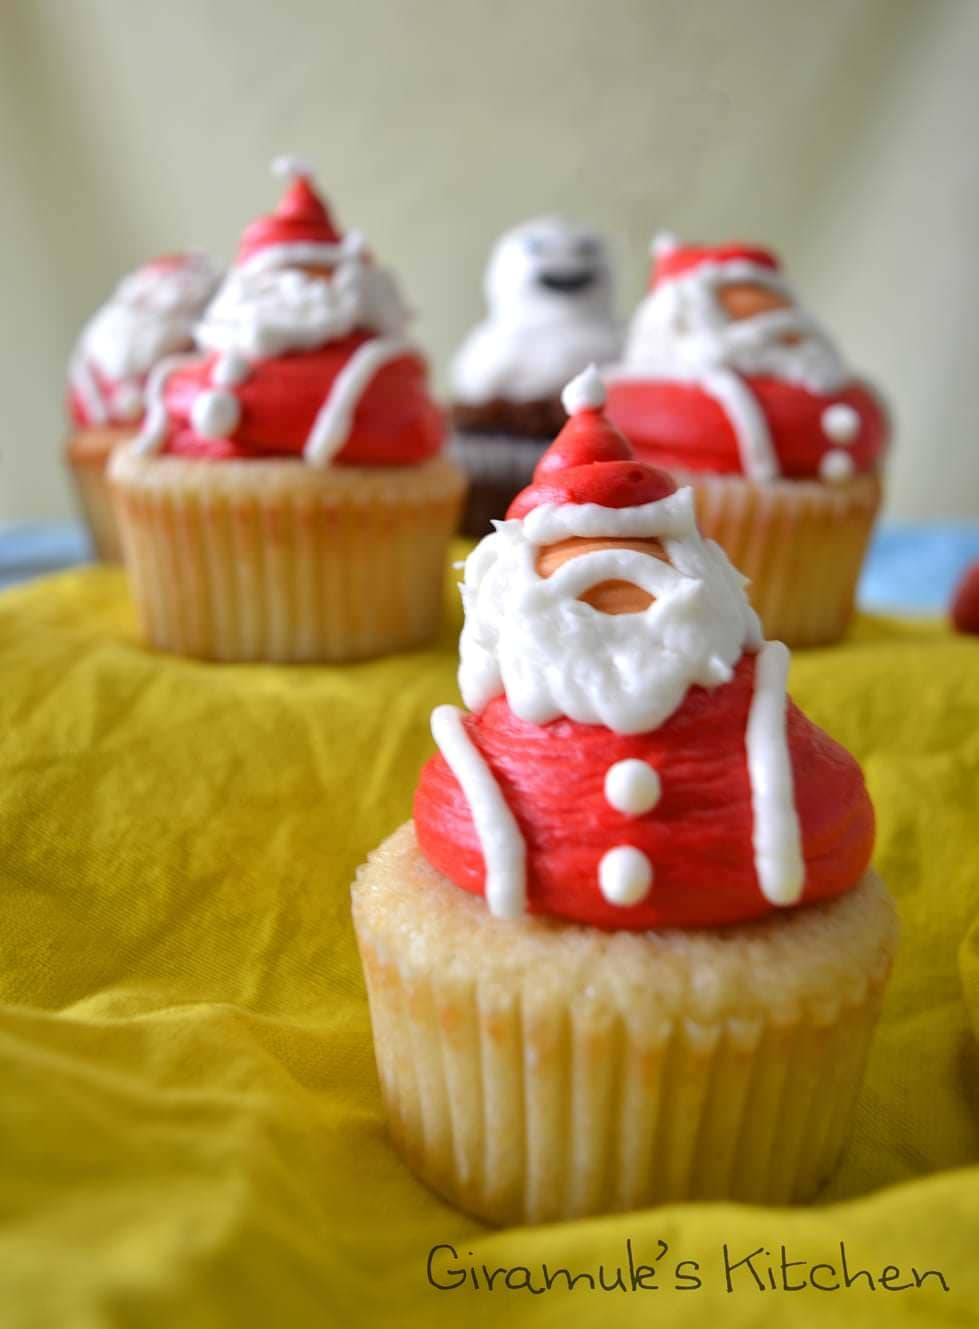 Snowmen or Santa Claus Christmas Cupcakes - Make your Christmas Vanilla cupcakes filled with orange curd & with Snowman & Santa claus frosting! You can add a Doctor who theme if you are a whovian or make it your own! Full visual how-to tutorial for the frosting included in the recipe!